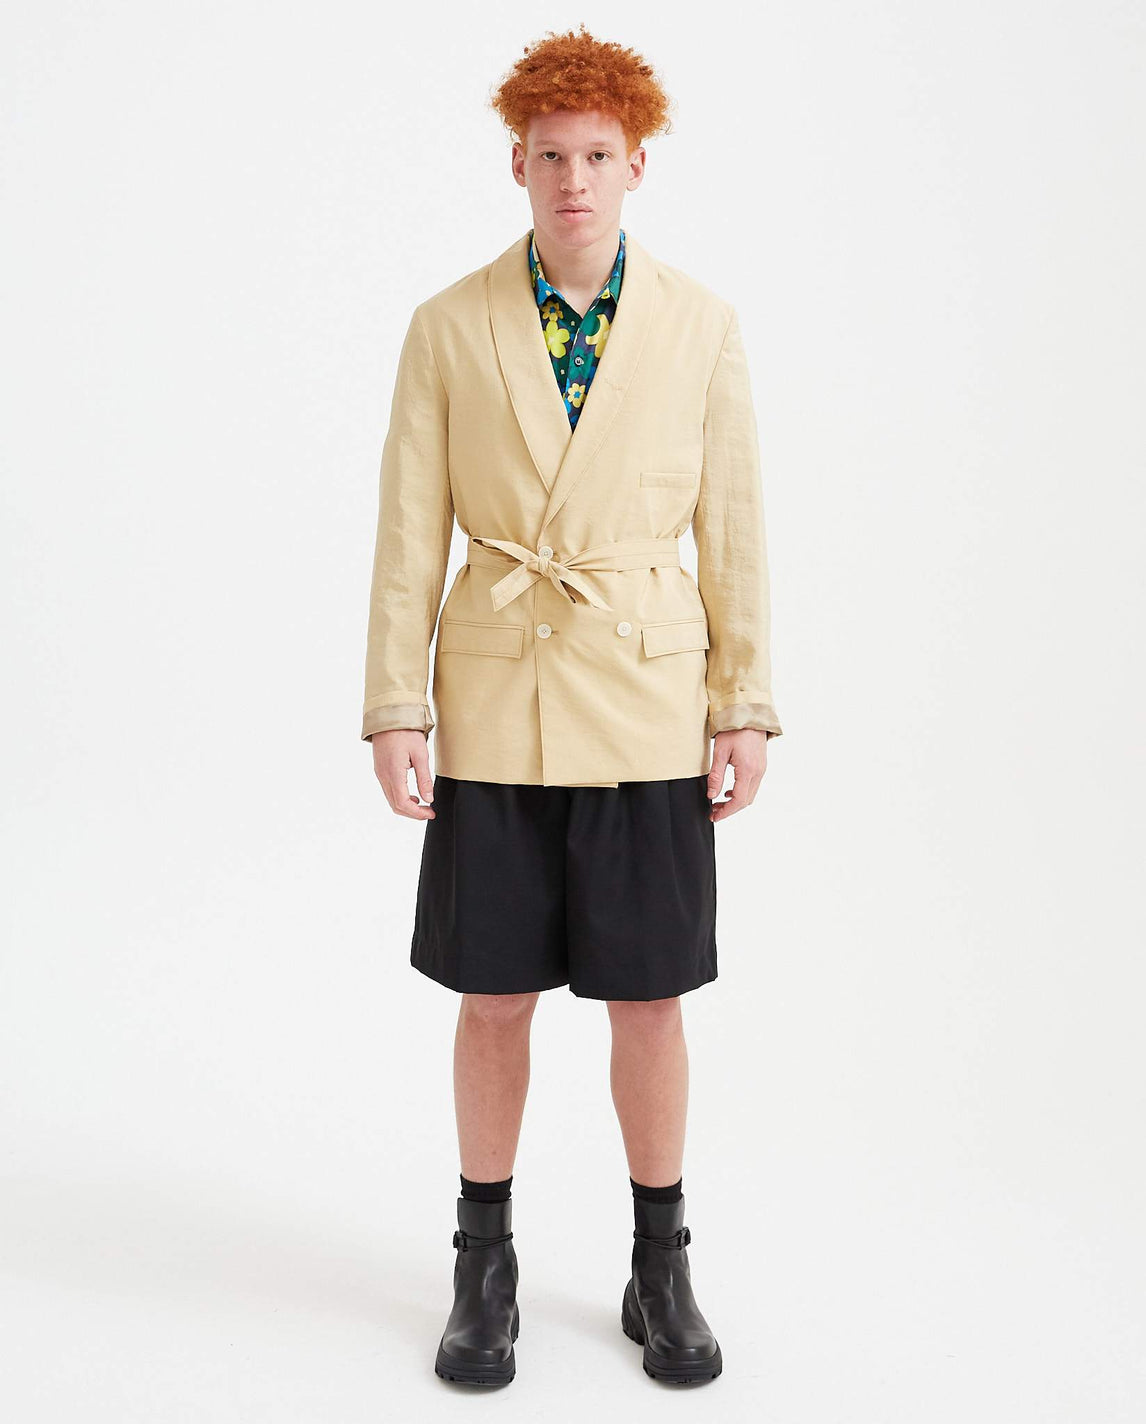 Double Breasted Belted Blazer - Beige MENS LEMAIRE